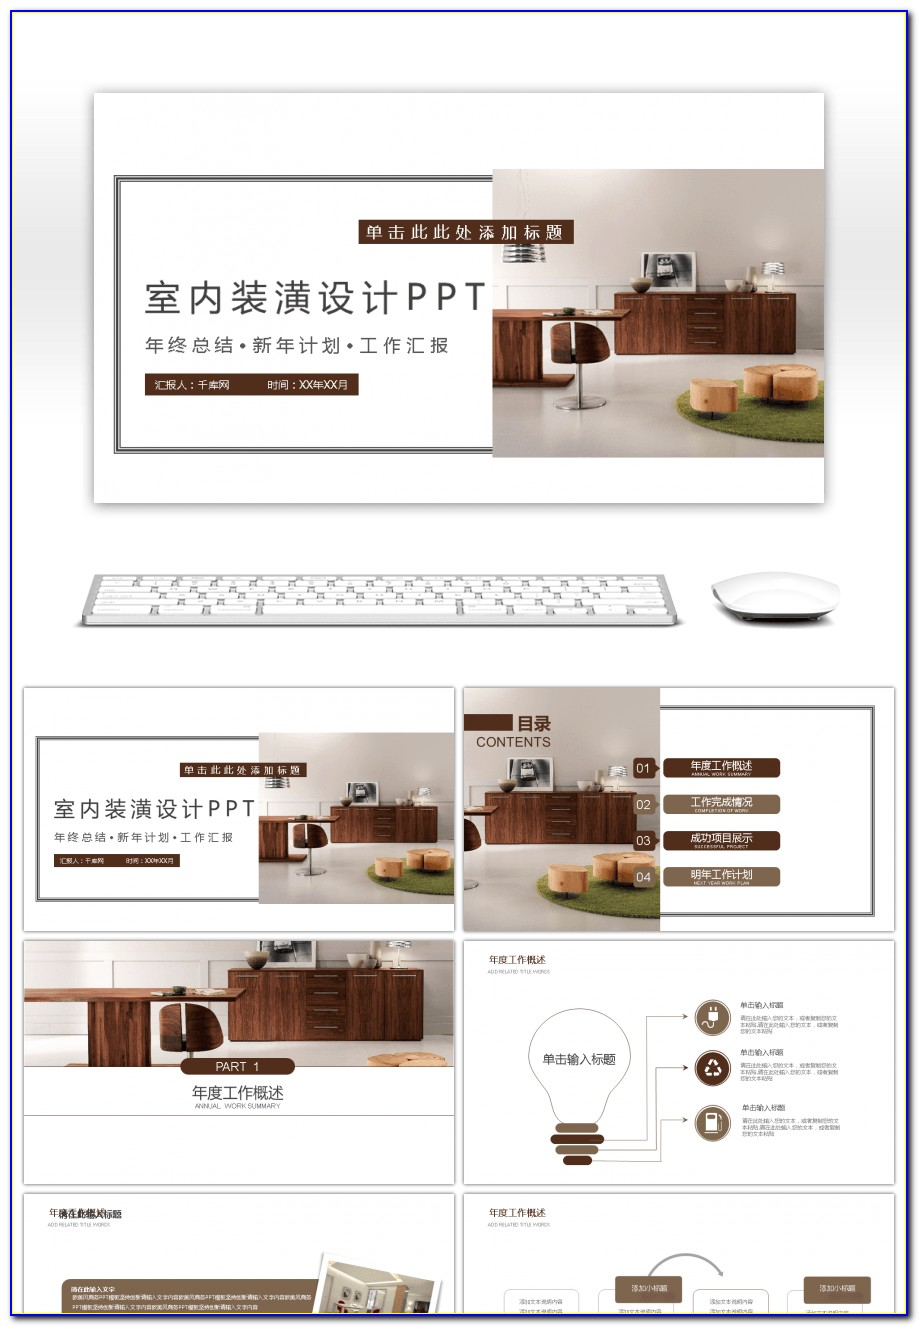 Interior Design Presentation Layout Ideas